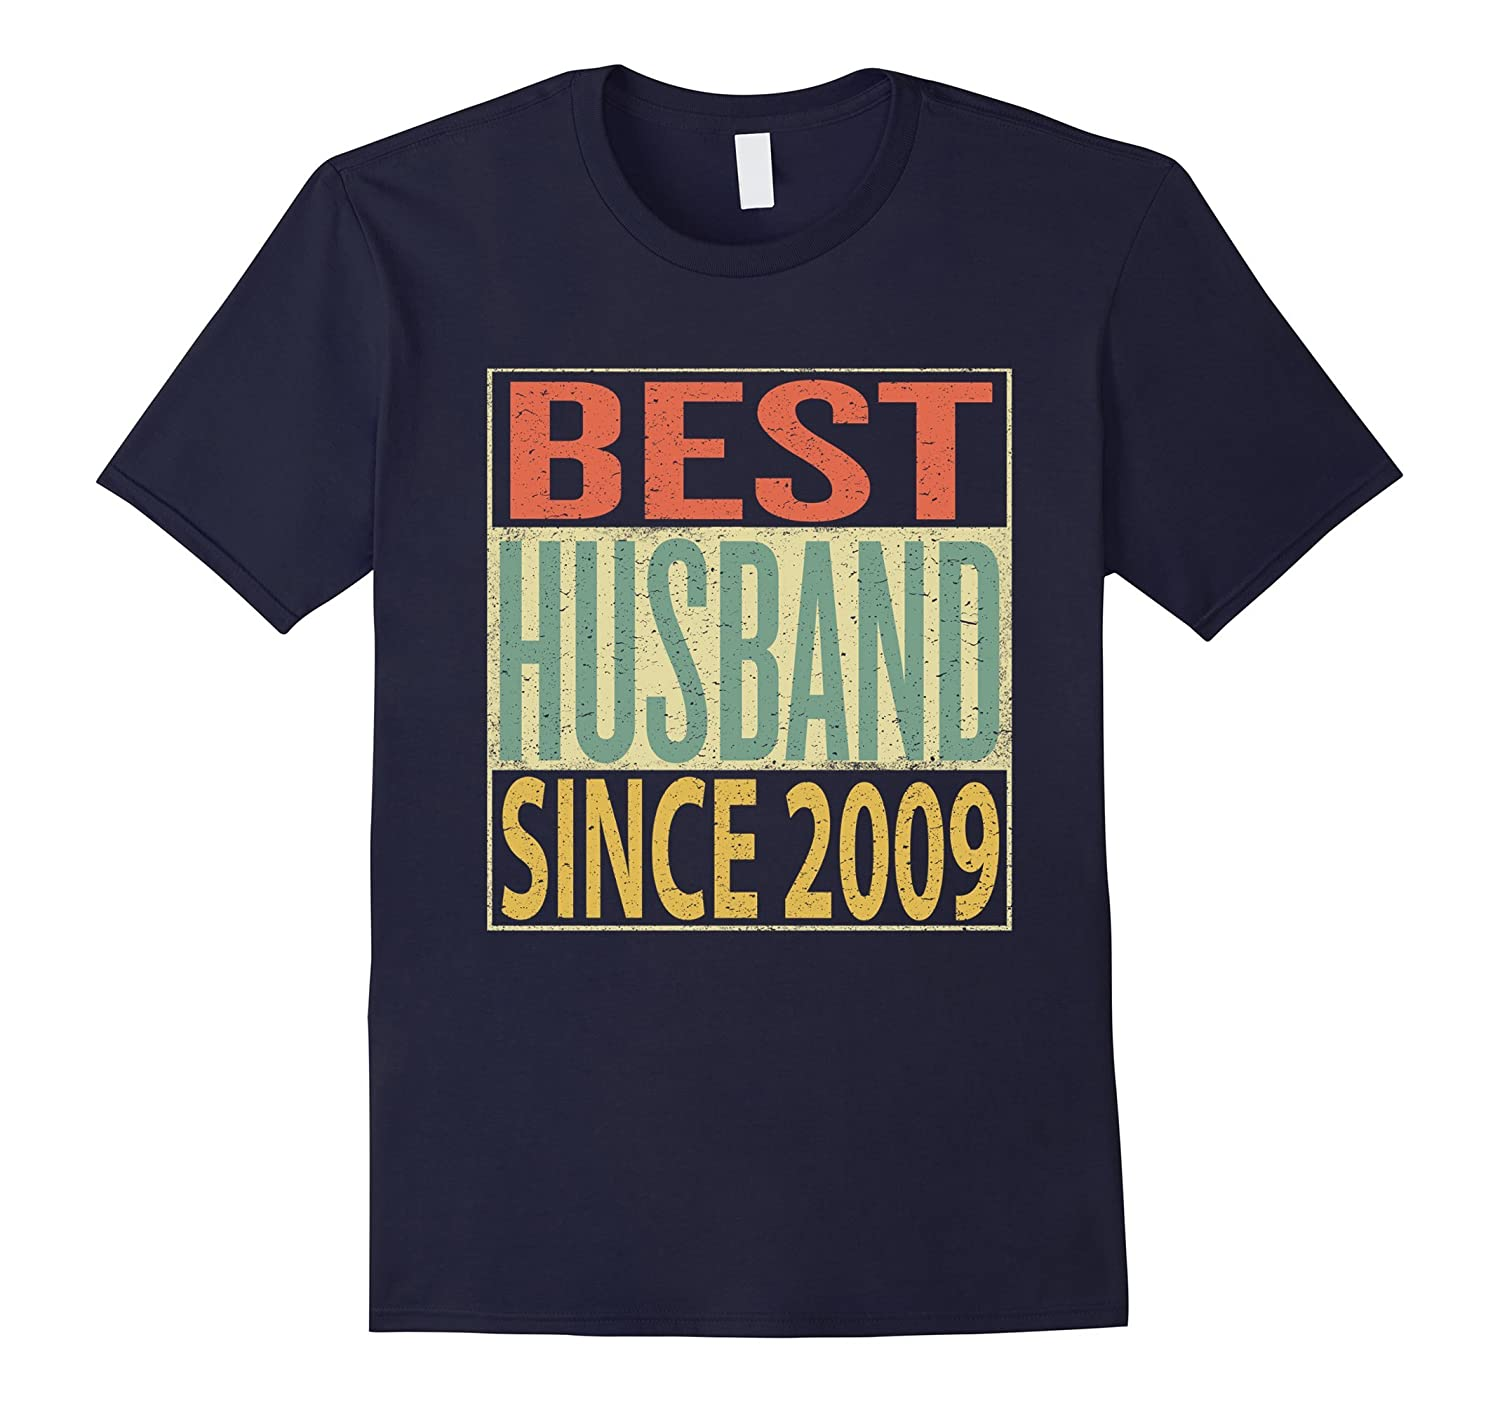 Mens Best Husband Since 2009 Shirt 8th Wedding Anniversary Gift-T-Shirt